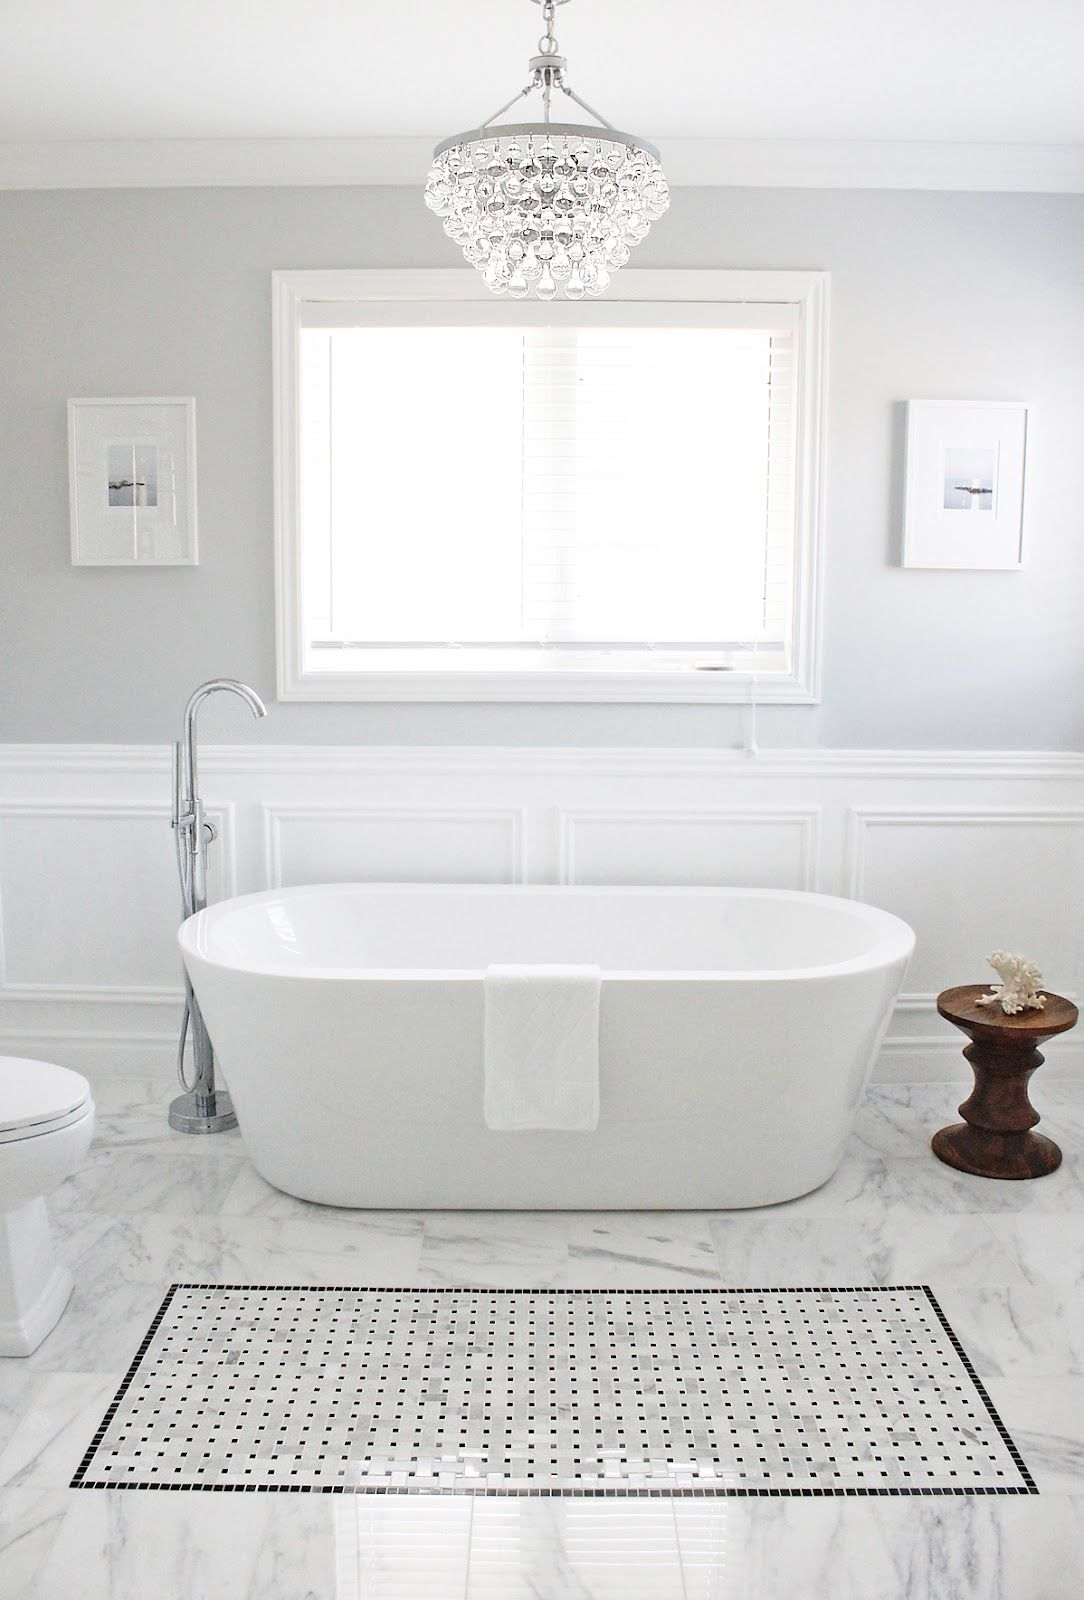 Valspar Polar Star Light Gray Bathroom Paint Color is creative ...